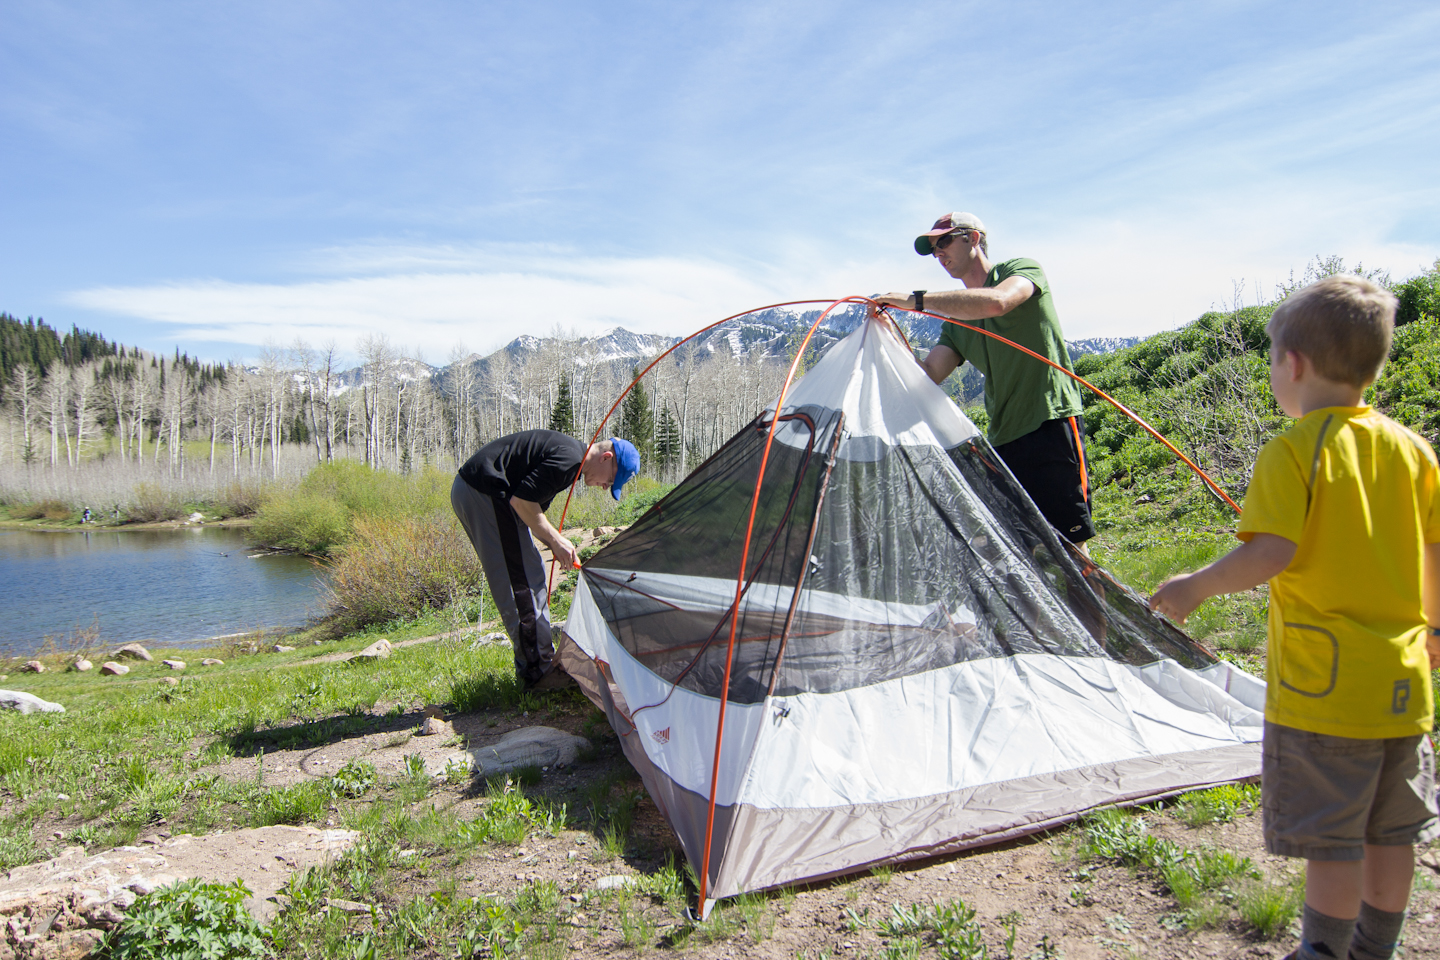 ... set up Kelty Salida 4 & Gear review: Kelty Salida 4 Tent - the kid project